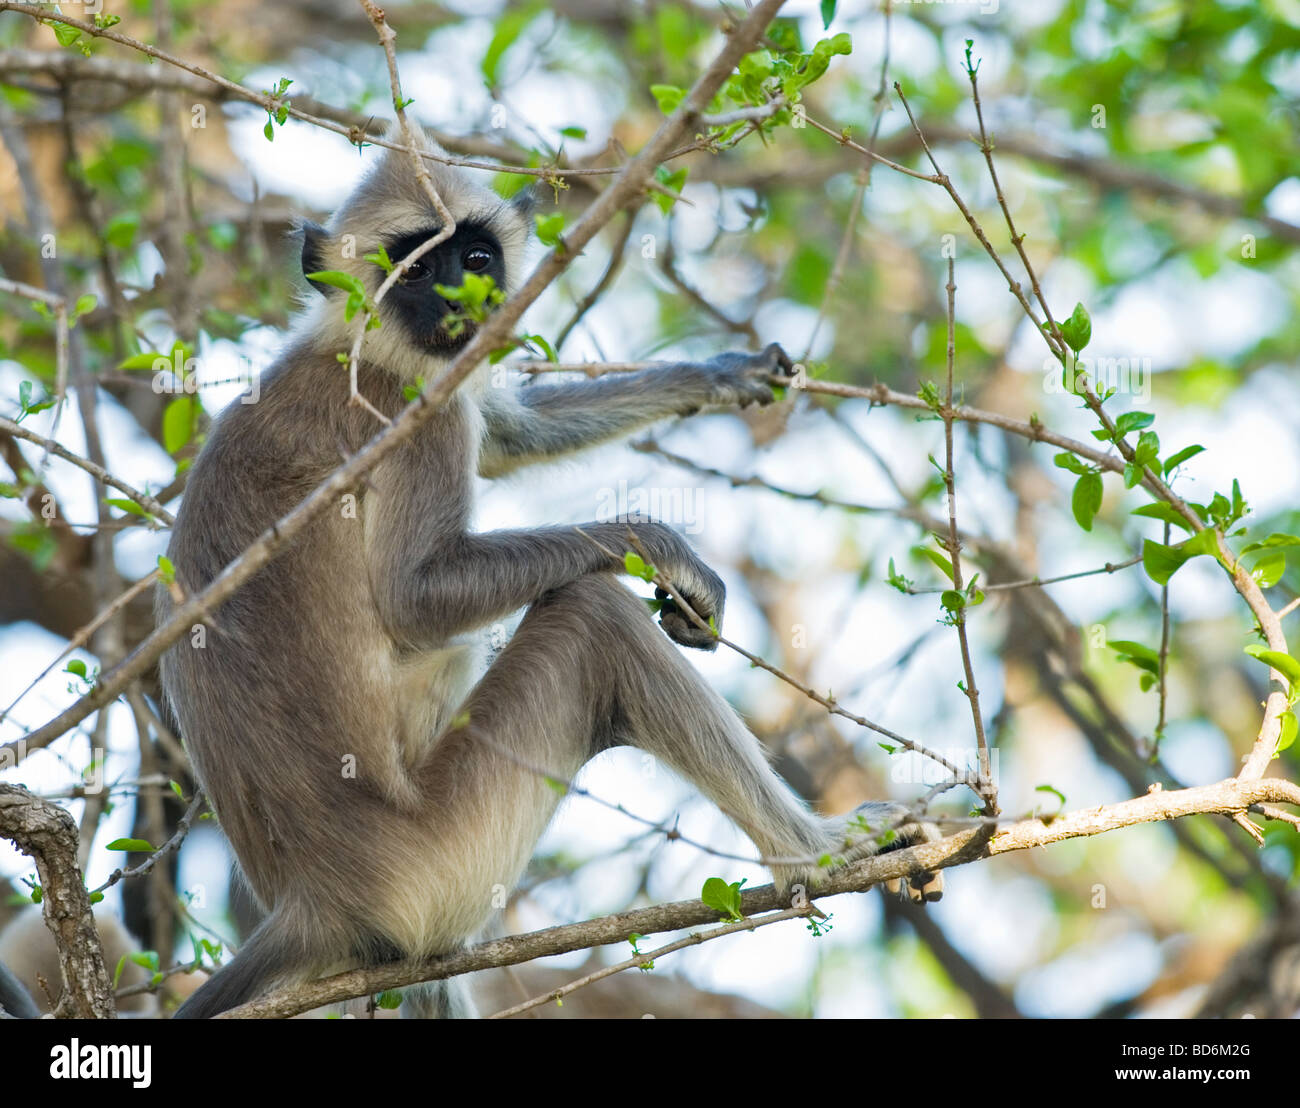 Grey Langur, Yala National Park, Sri Lanka - Stock Image